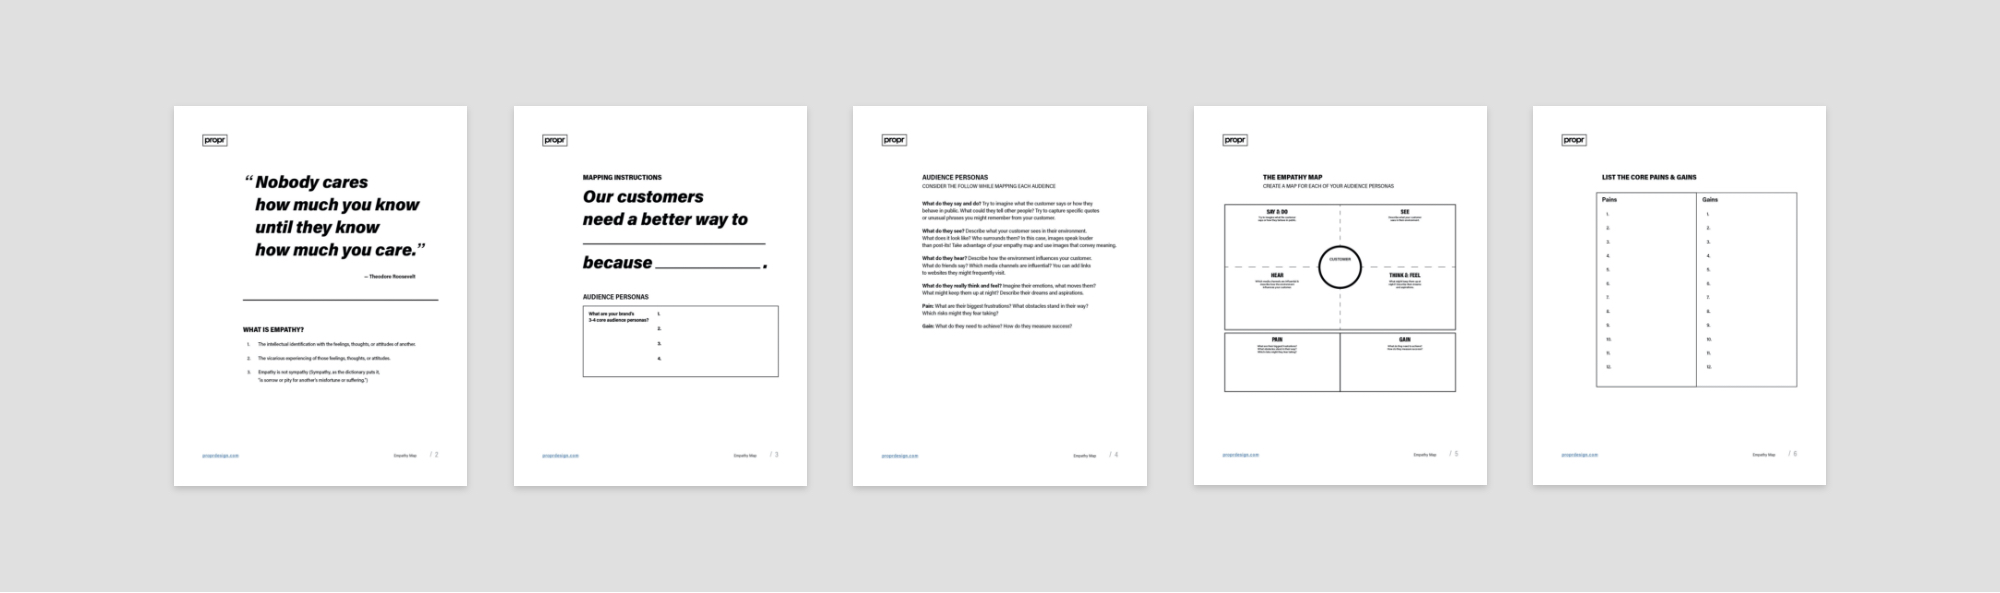 Empathy Worksheet Download@2x